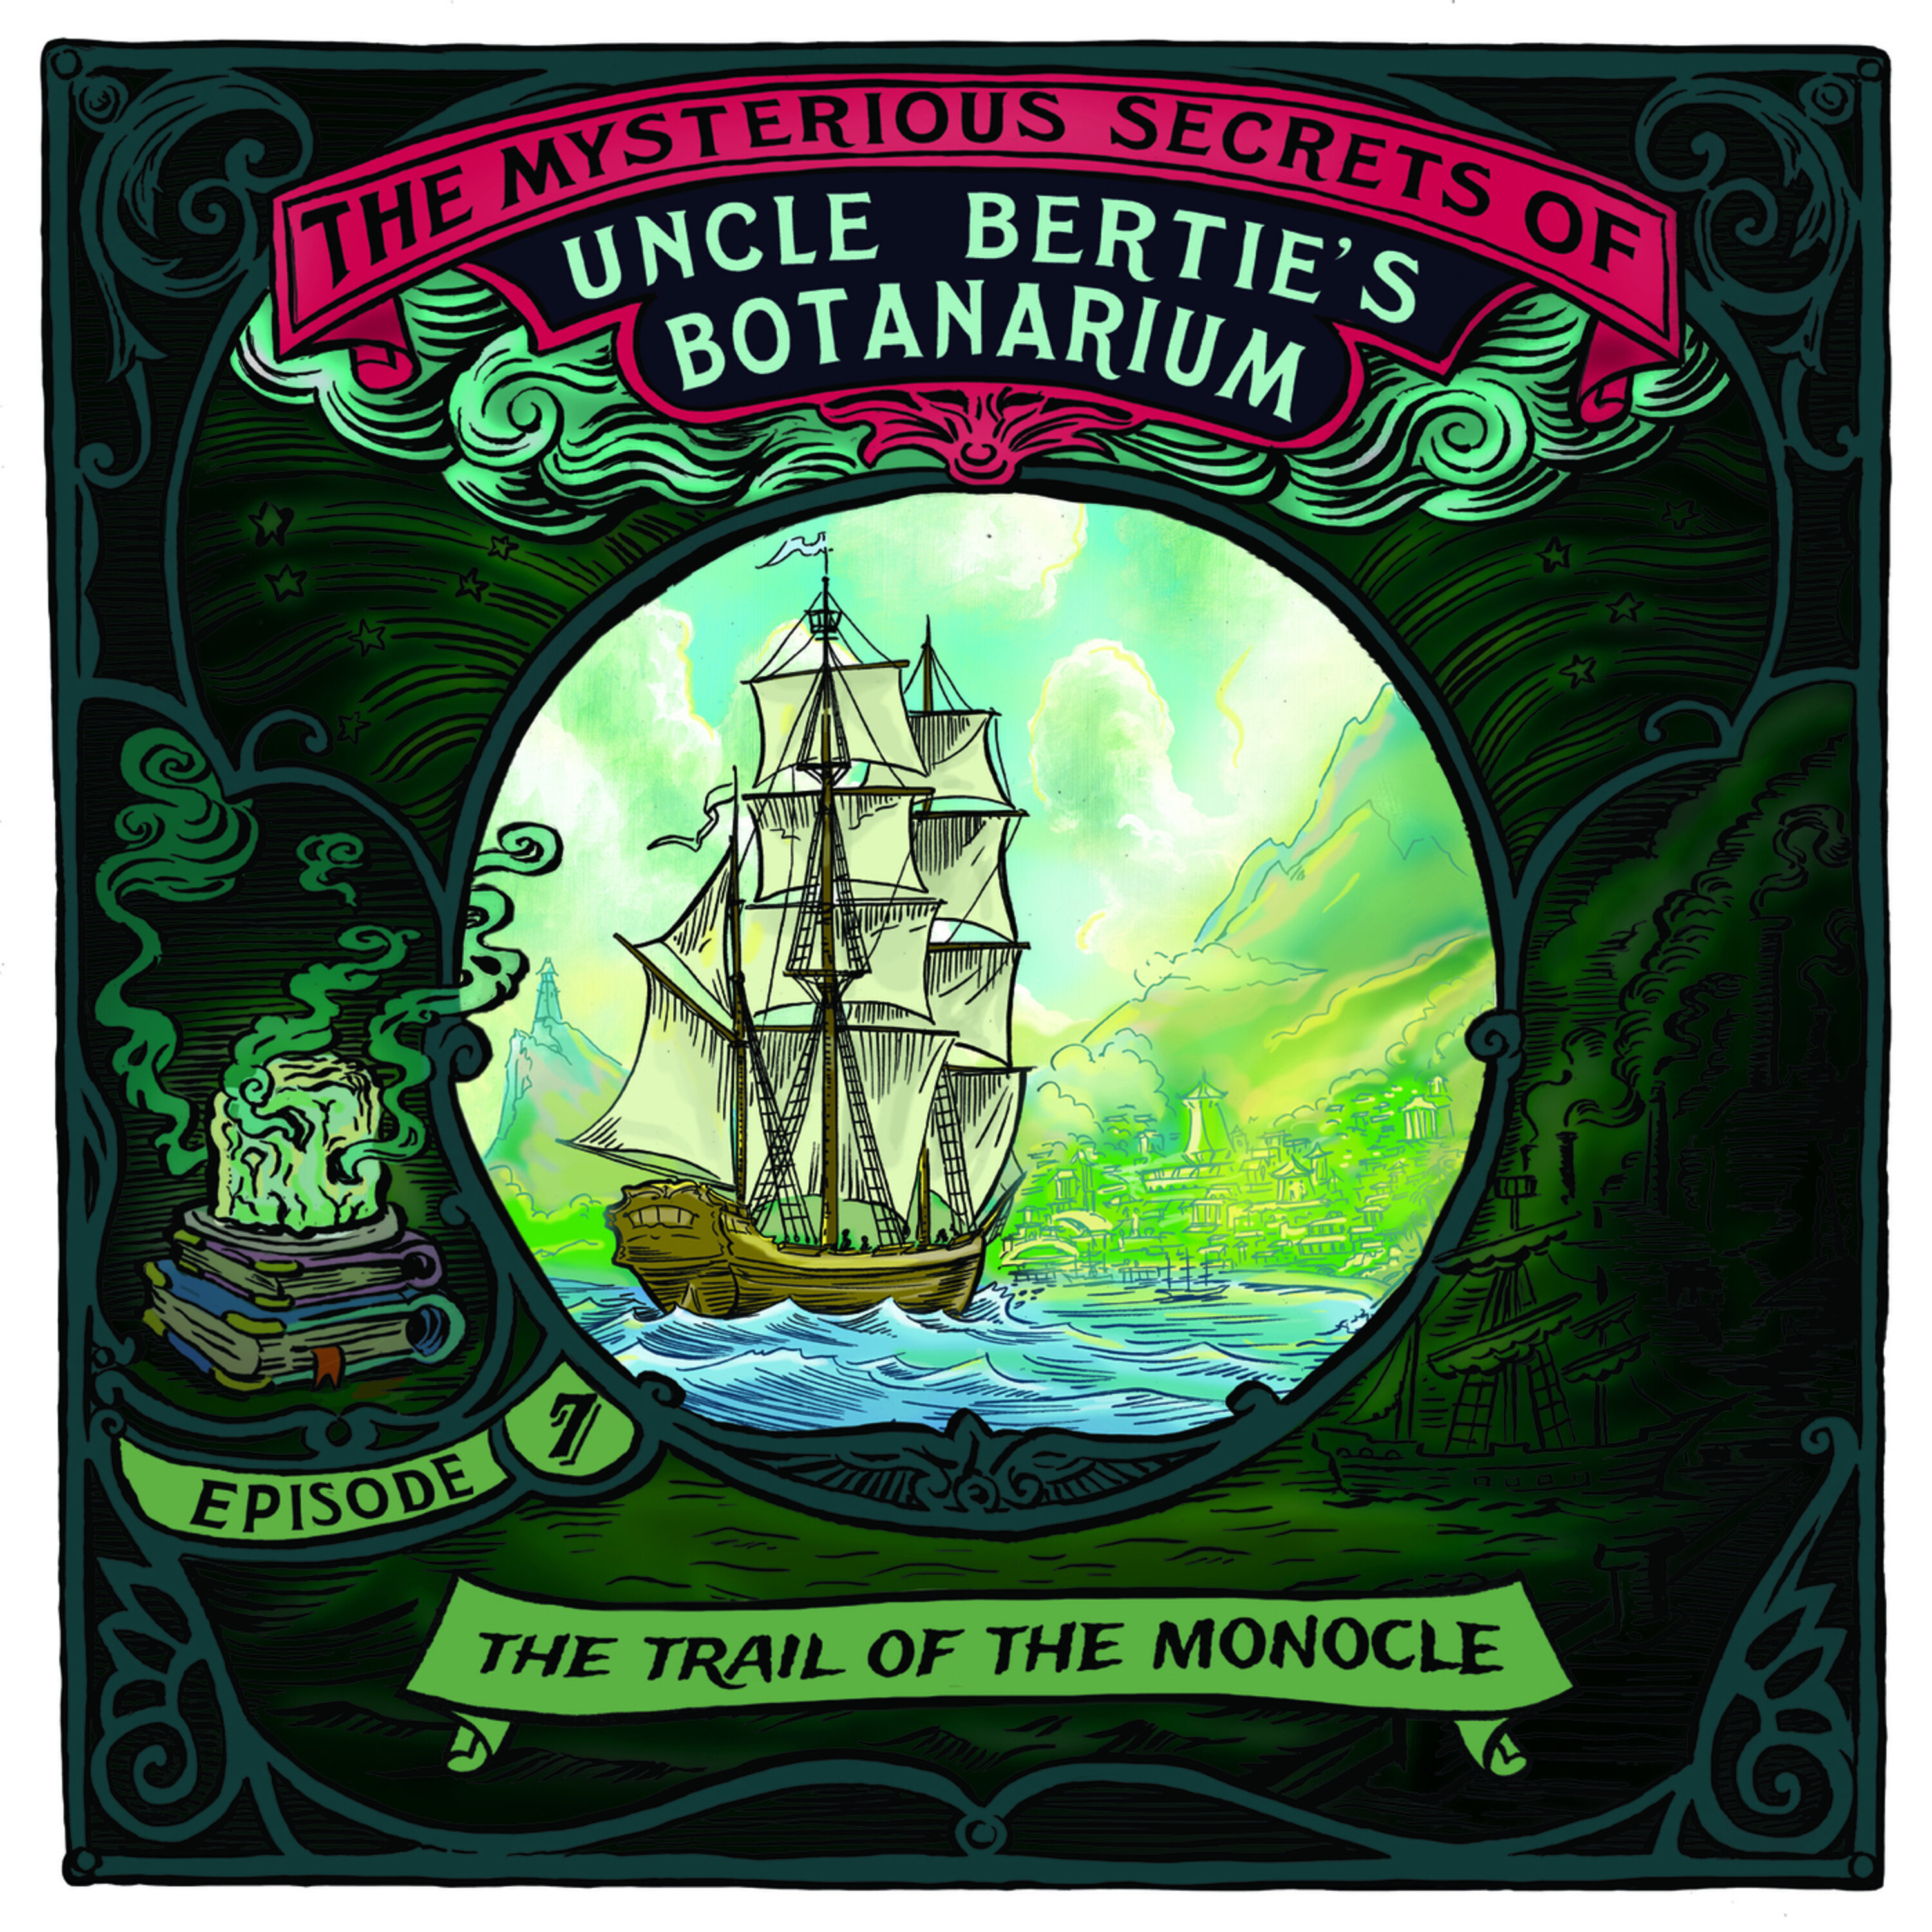 The Mysterious Secrets Of Uncle Bertie's Botanarium